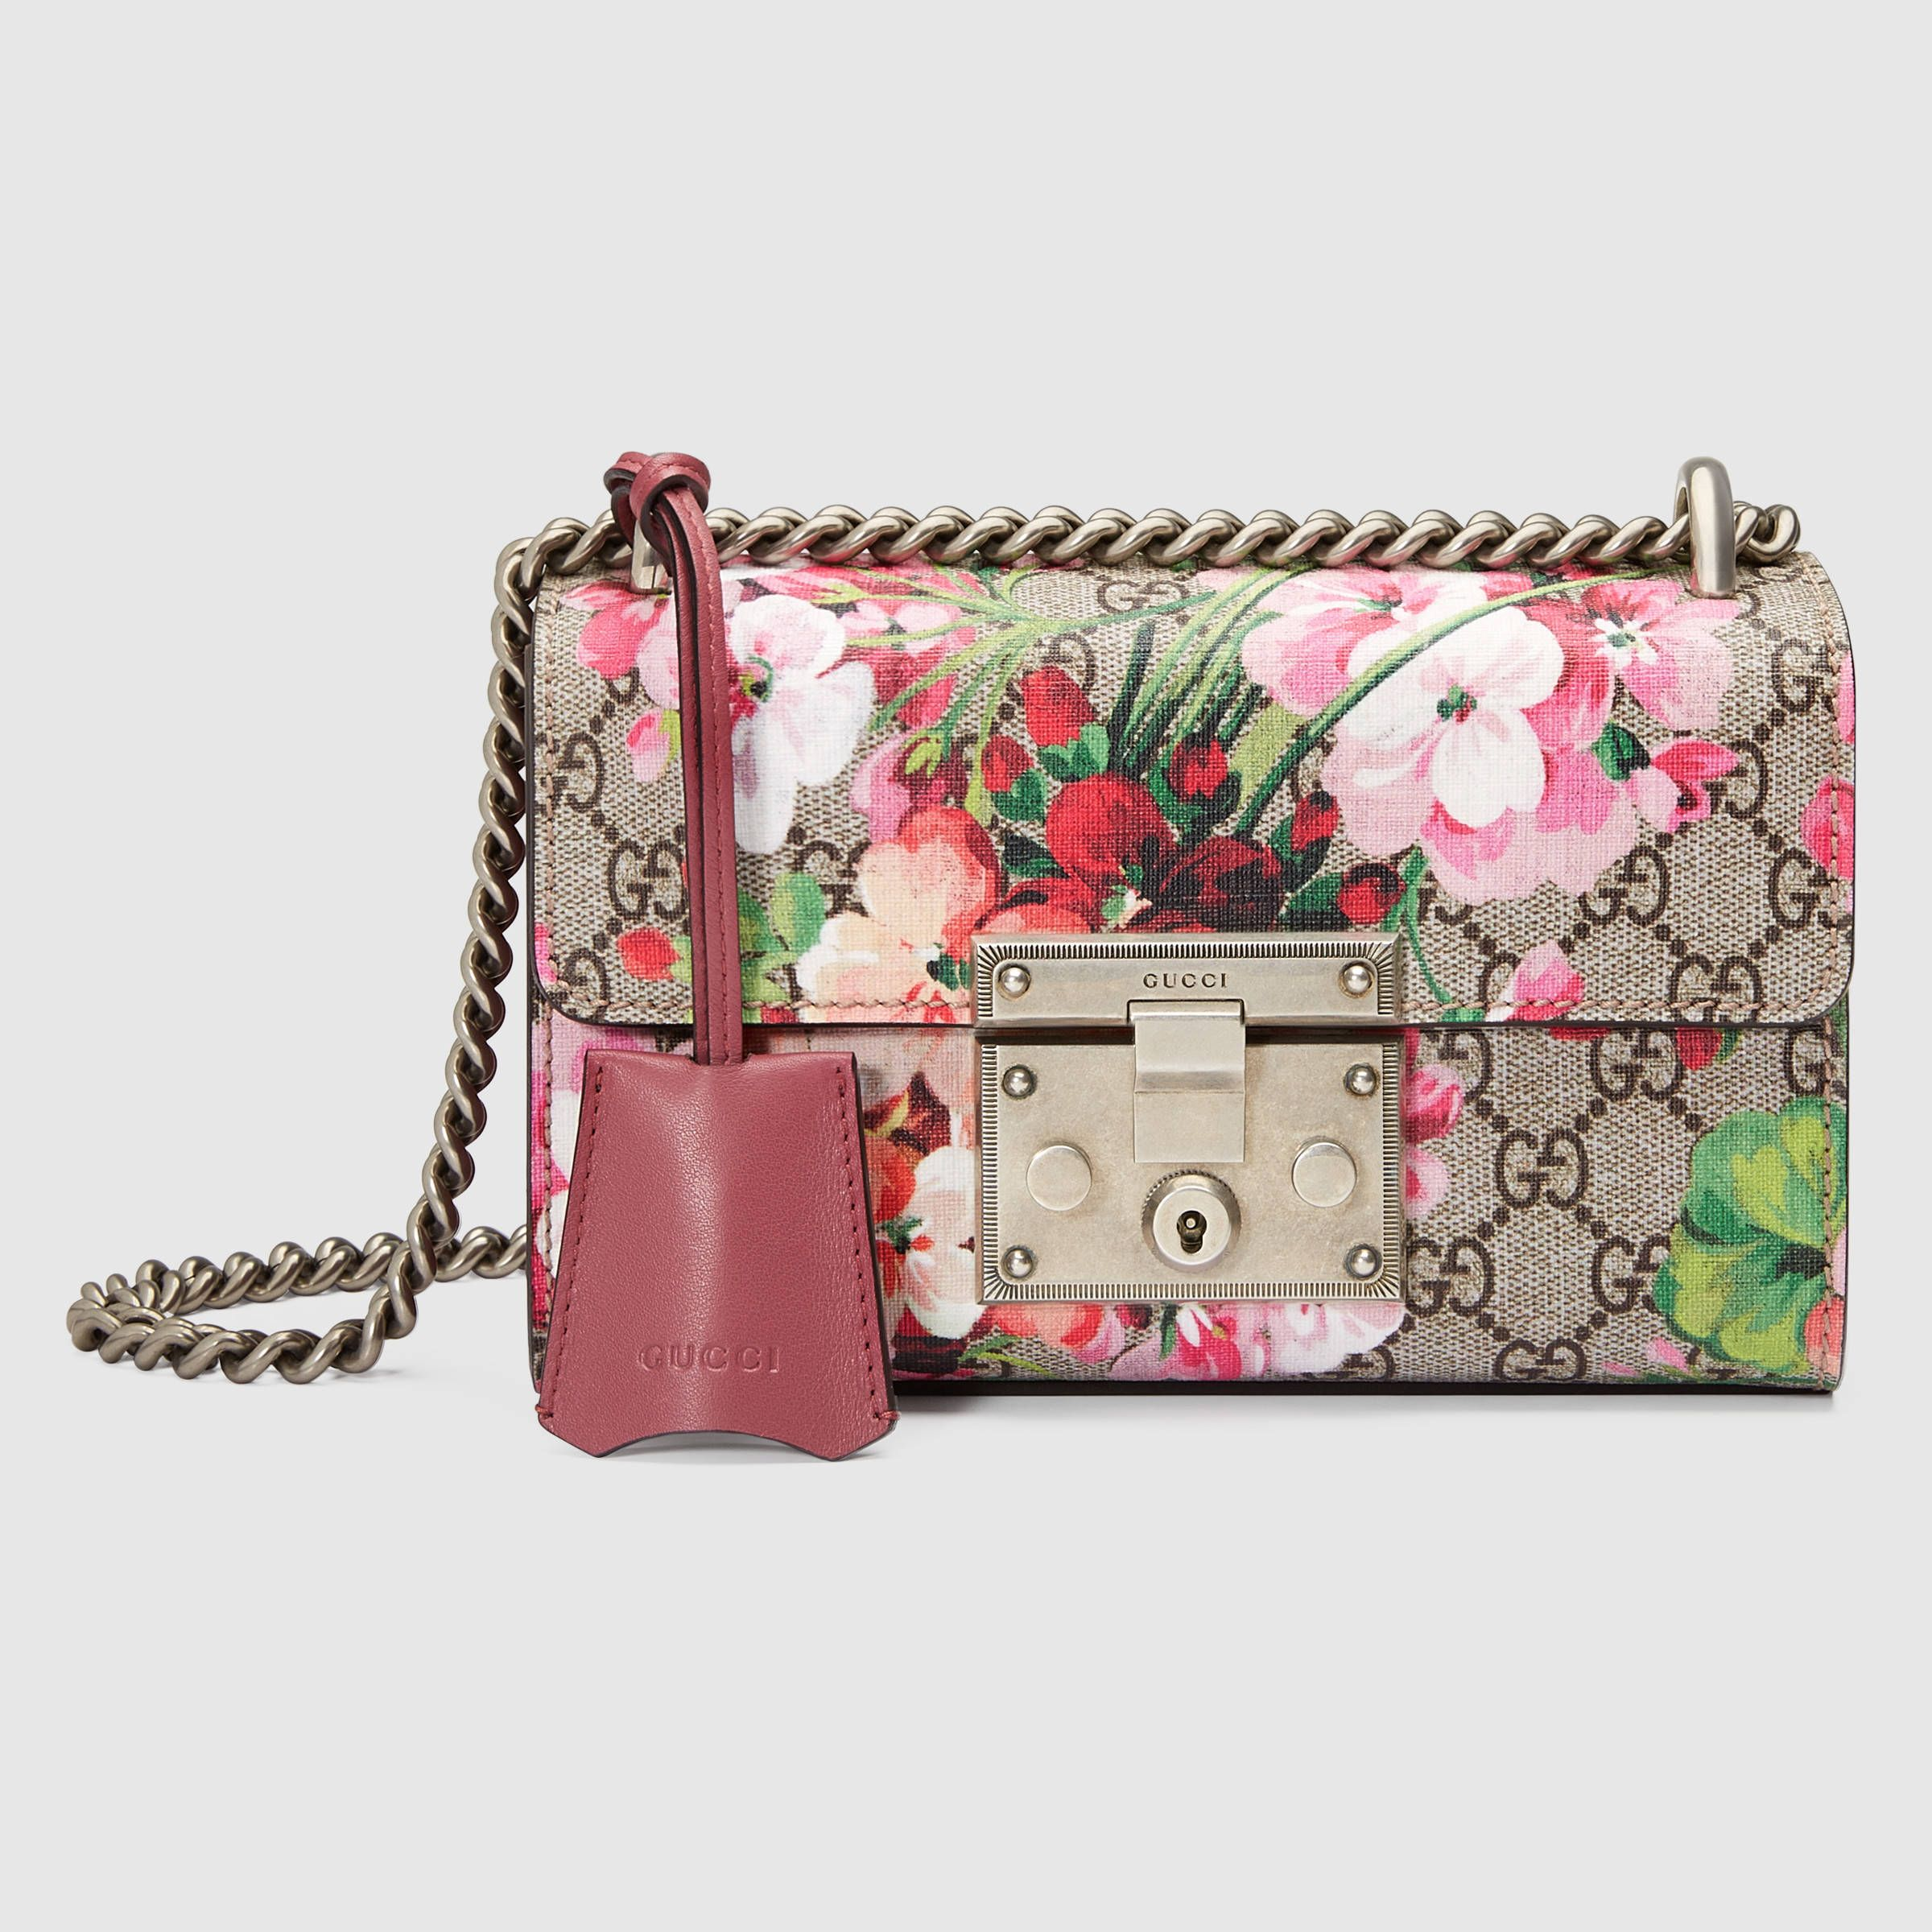 ad7c2581dcf Gucci Women - Padlock Blooms shoulder bag - 409487KU2IN8693